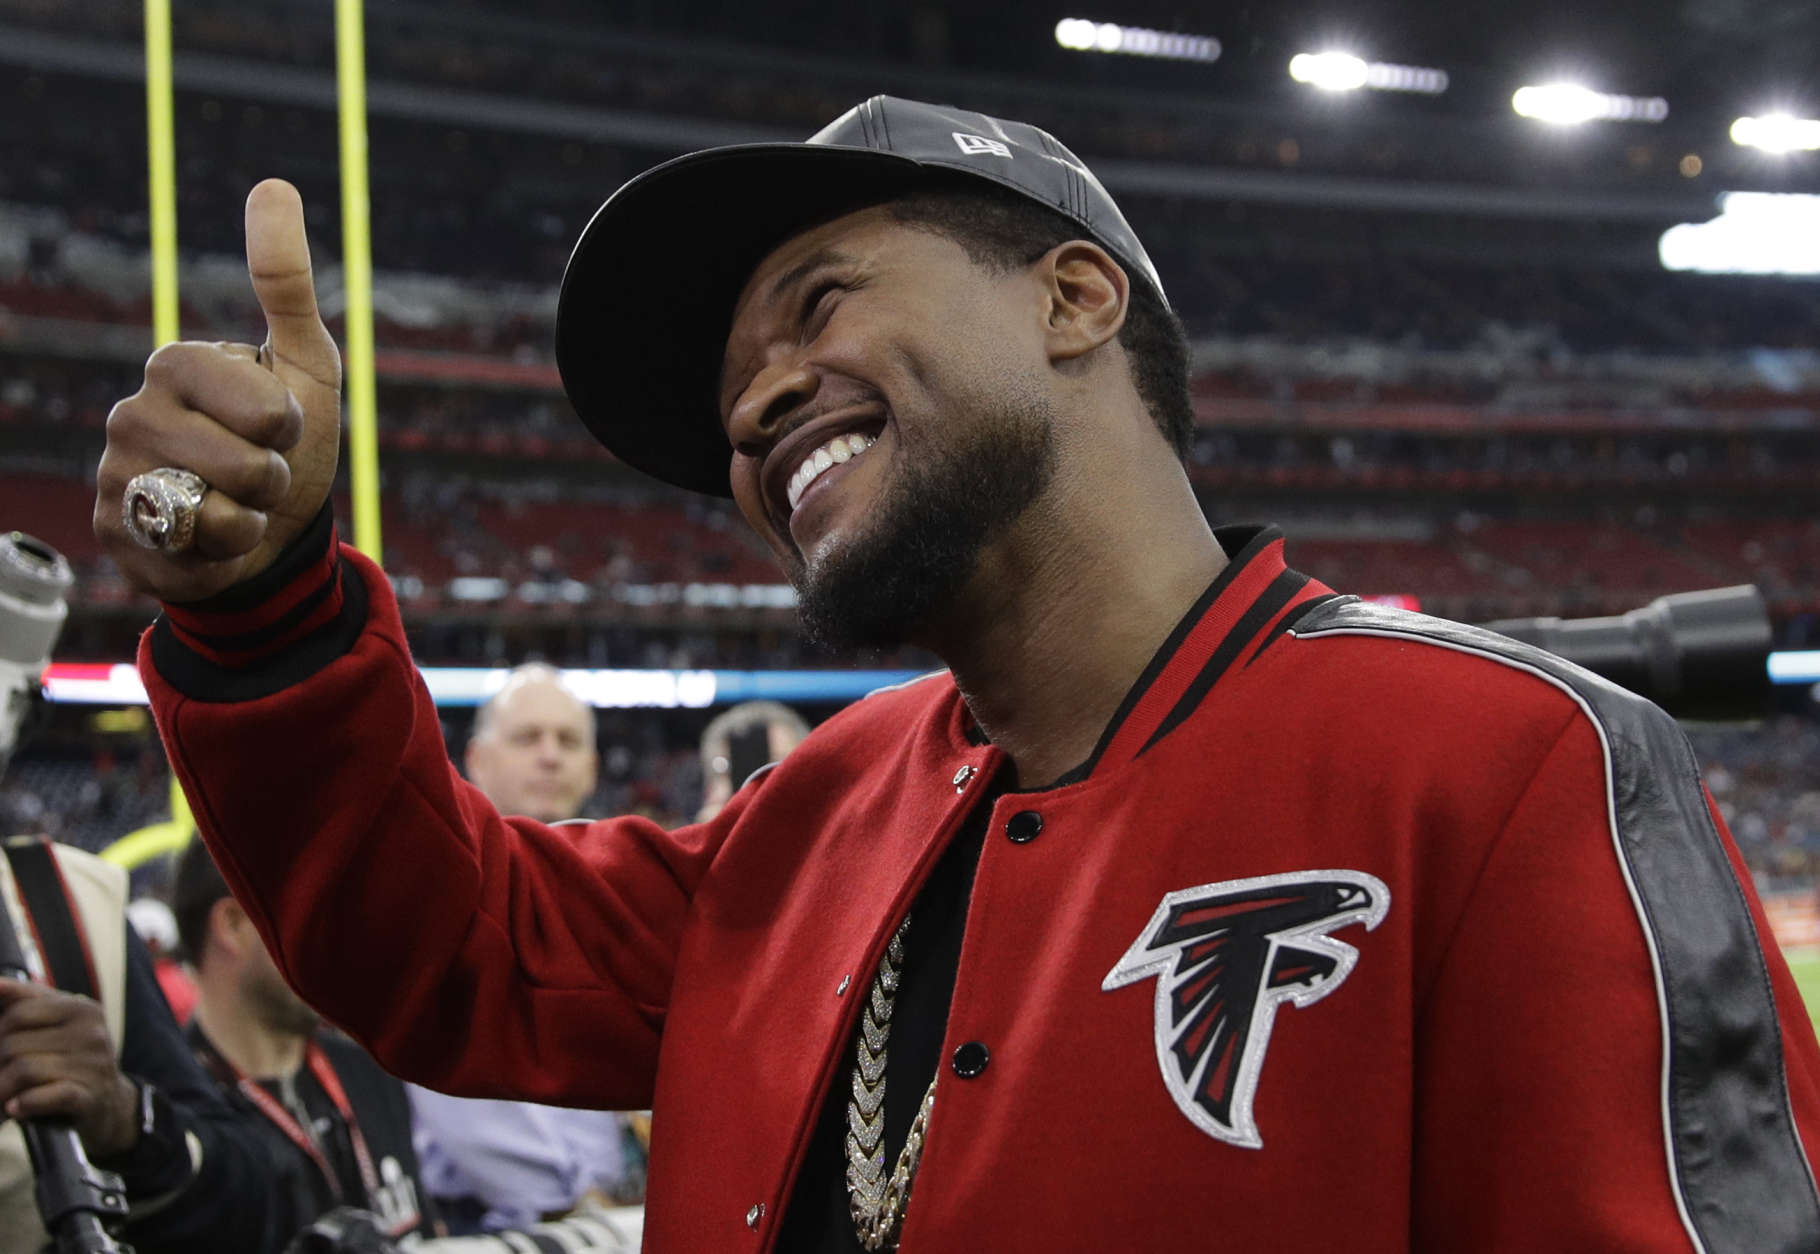 Usher poses for photos before the NFL Super Bowl 51 football game between the New England Patriots and the Atlanta Falcons, Sunday, Feb. 5, 2017, in Houston. (AP Photo/Jae C. Hong)